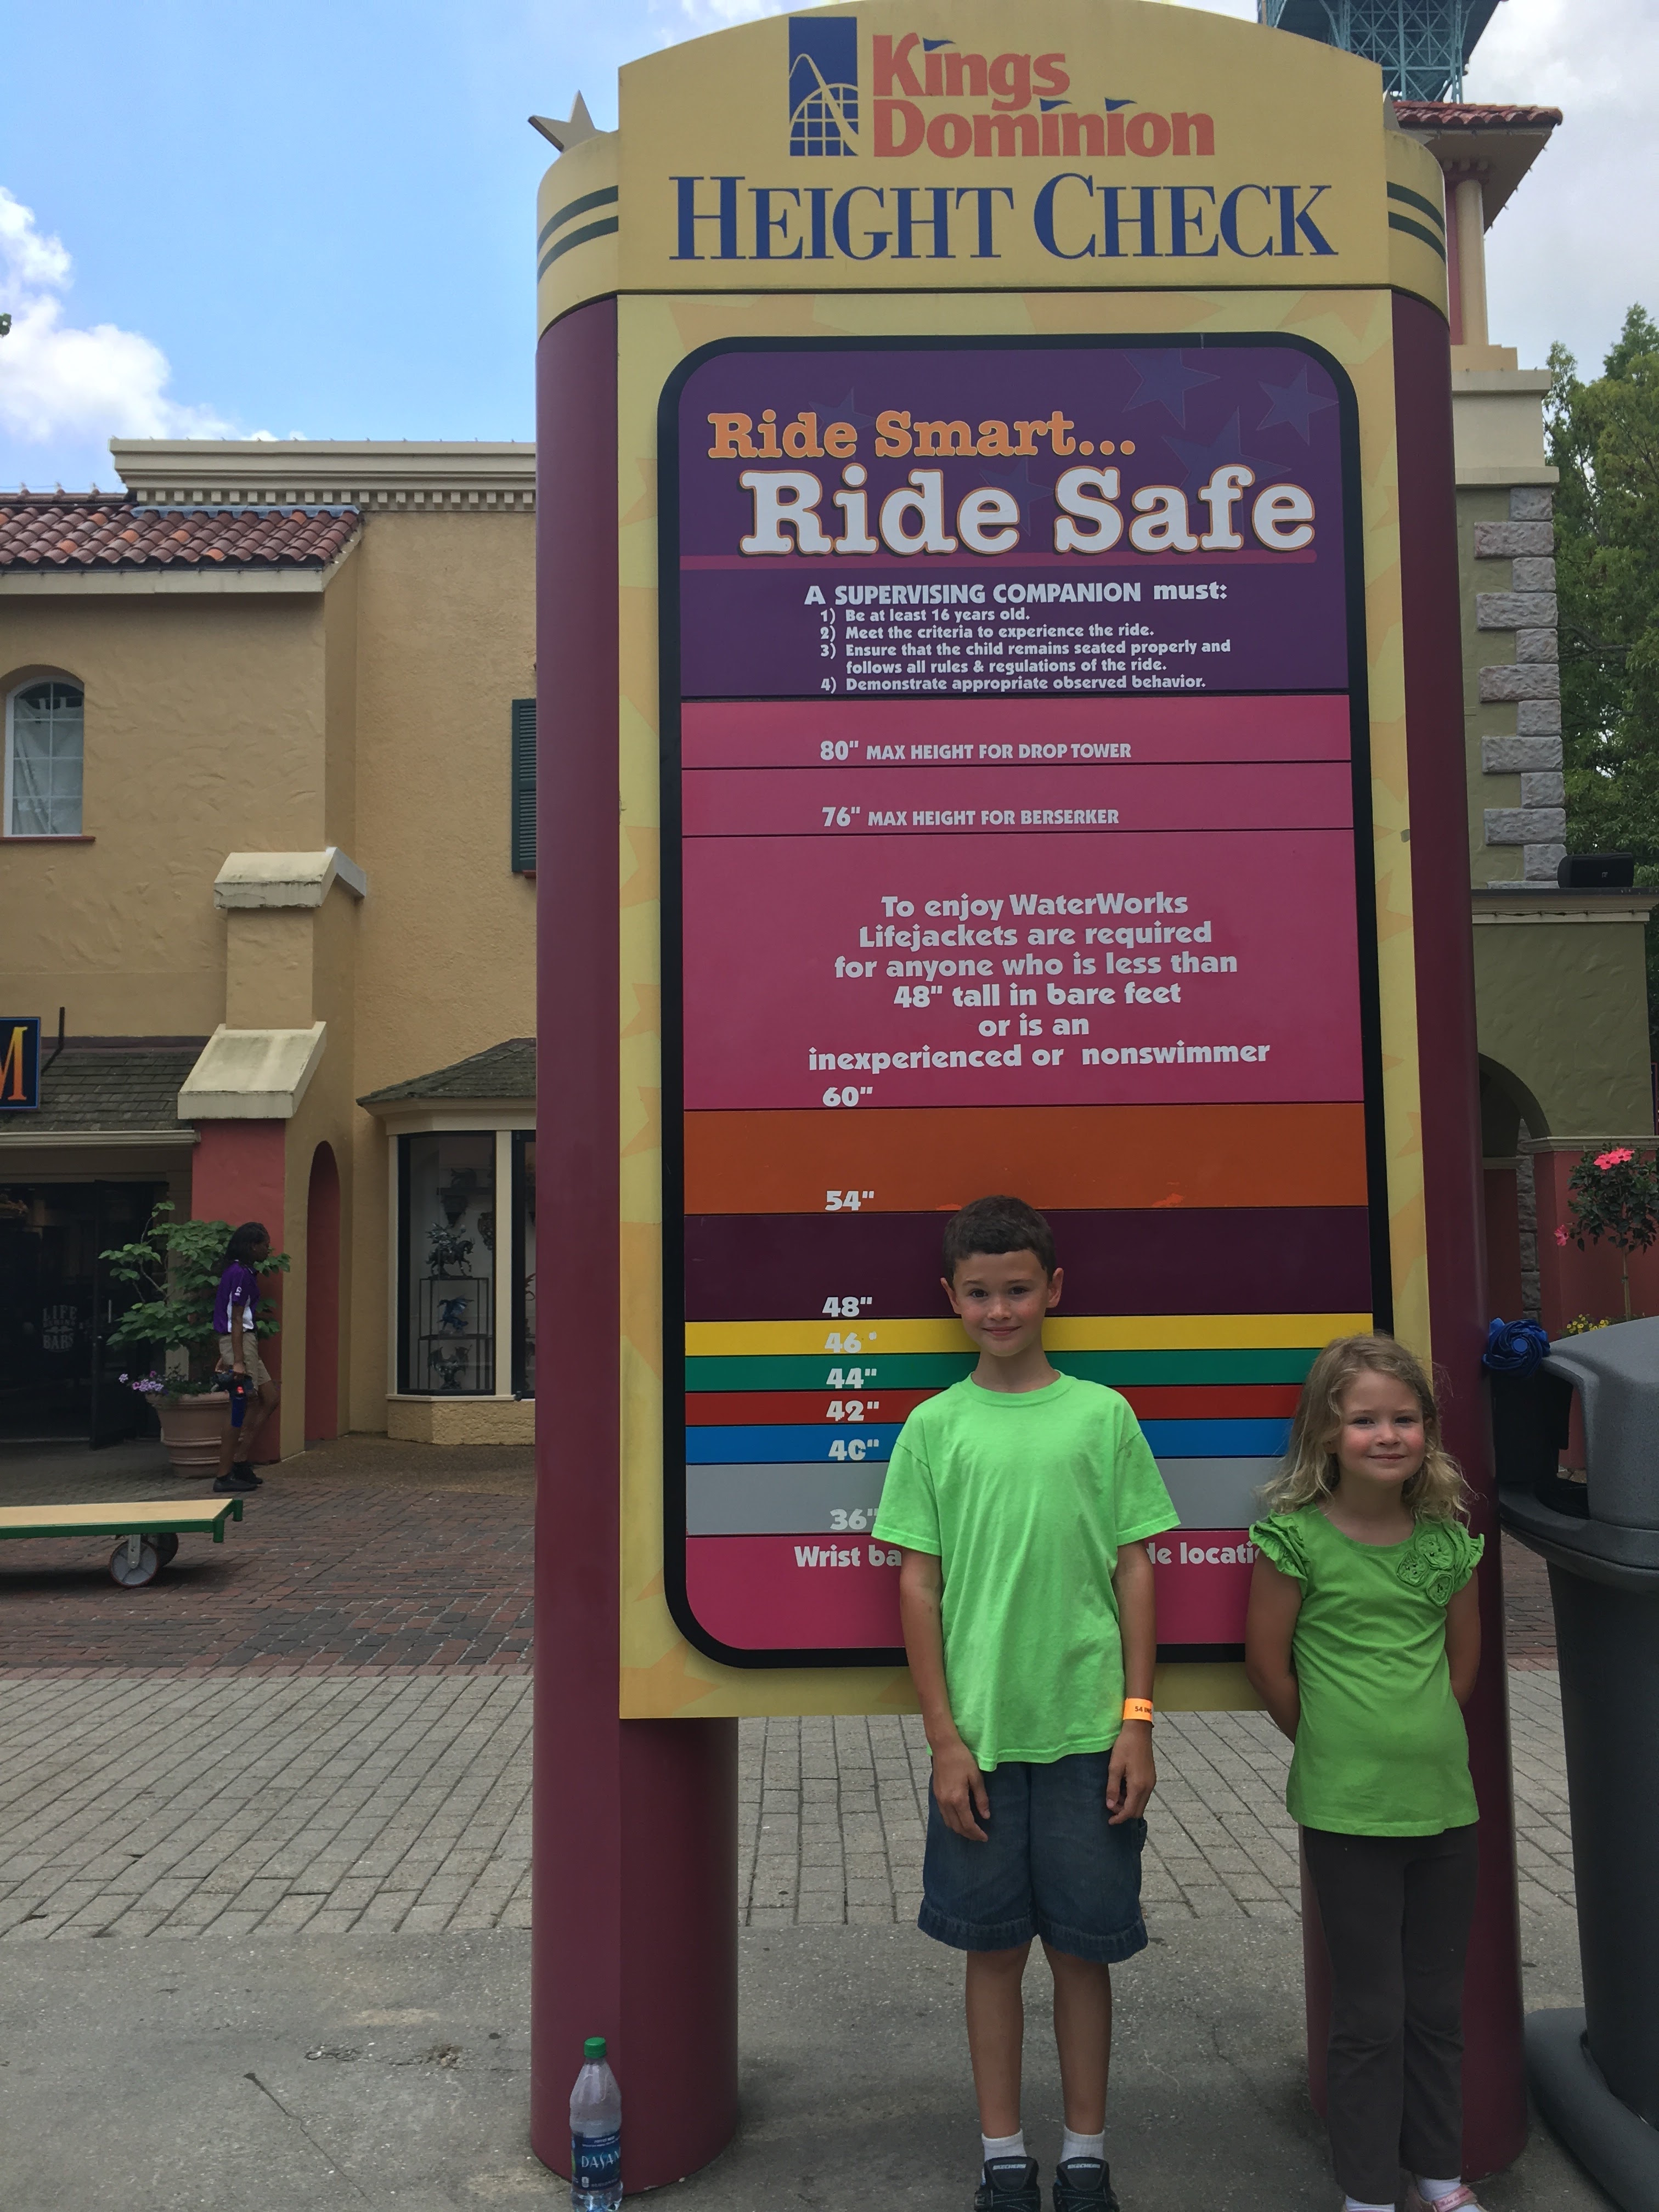 Kings dominion discount coupons - Kings Dominion Height Check Chart Wristbands